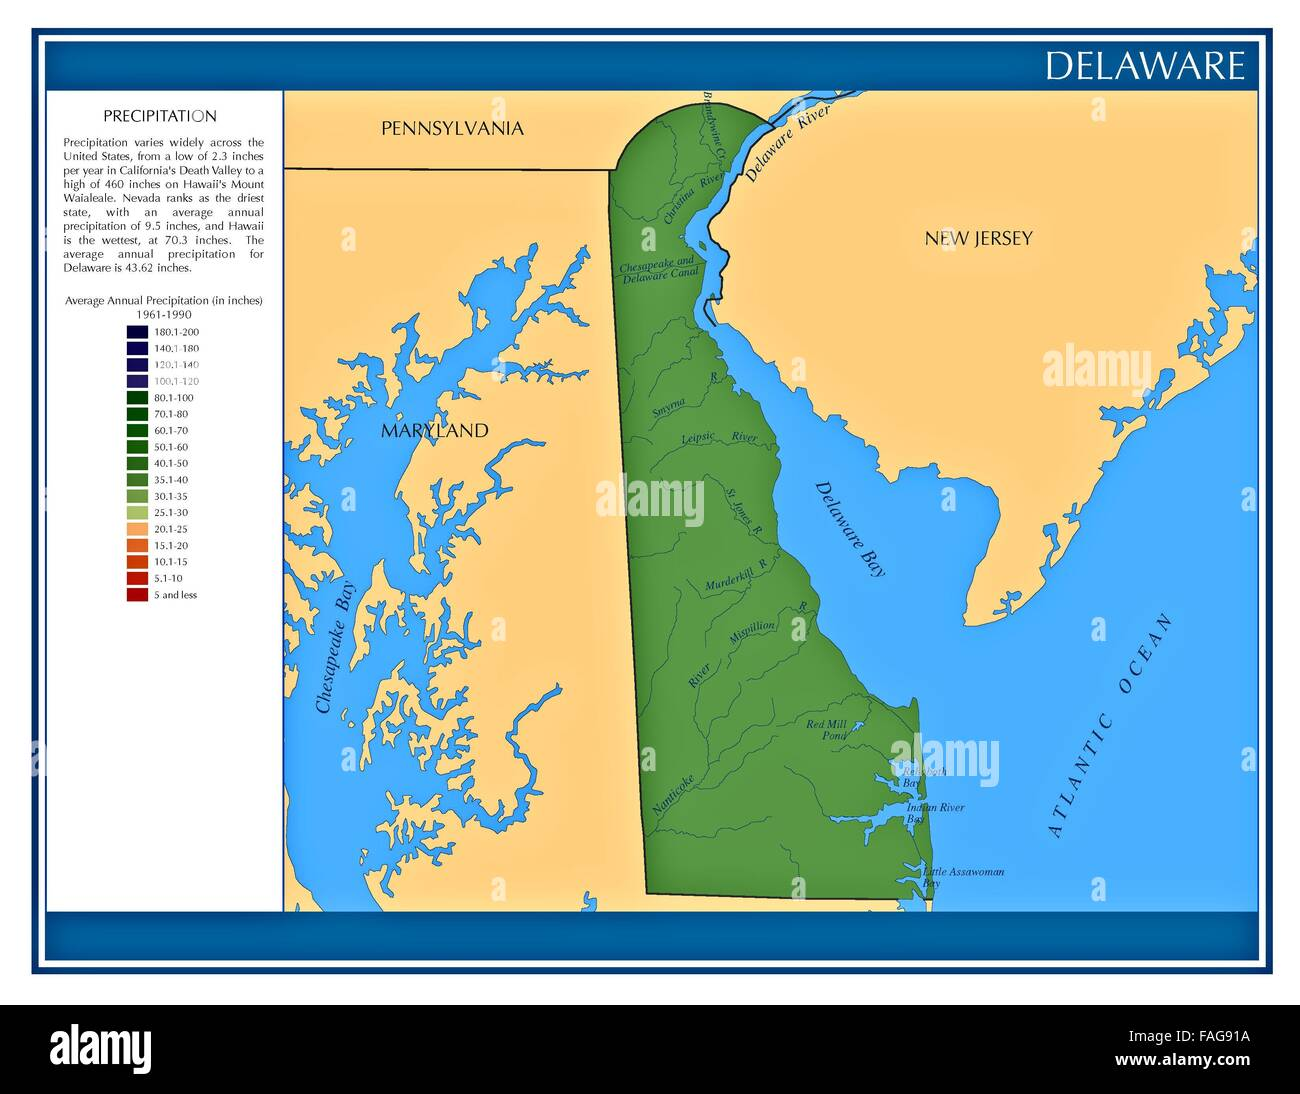 Delaware United States water precipitation statistics map by State ...